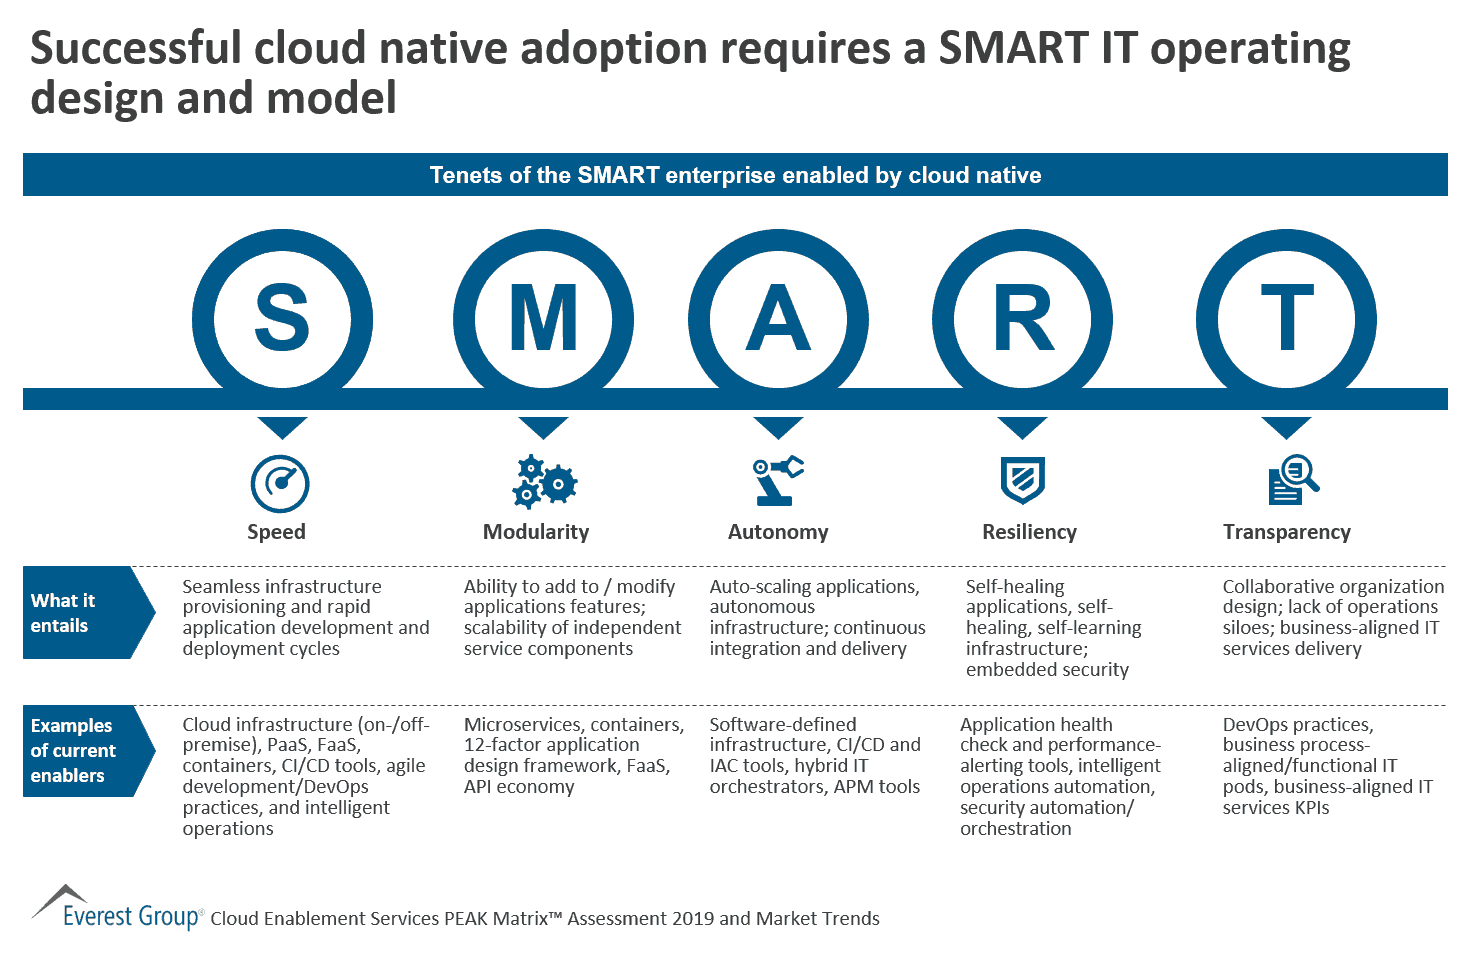 Successful cloud native adoption requires a SMART IT operating design and model